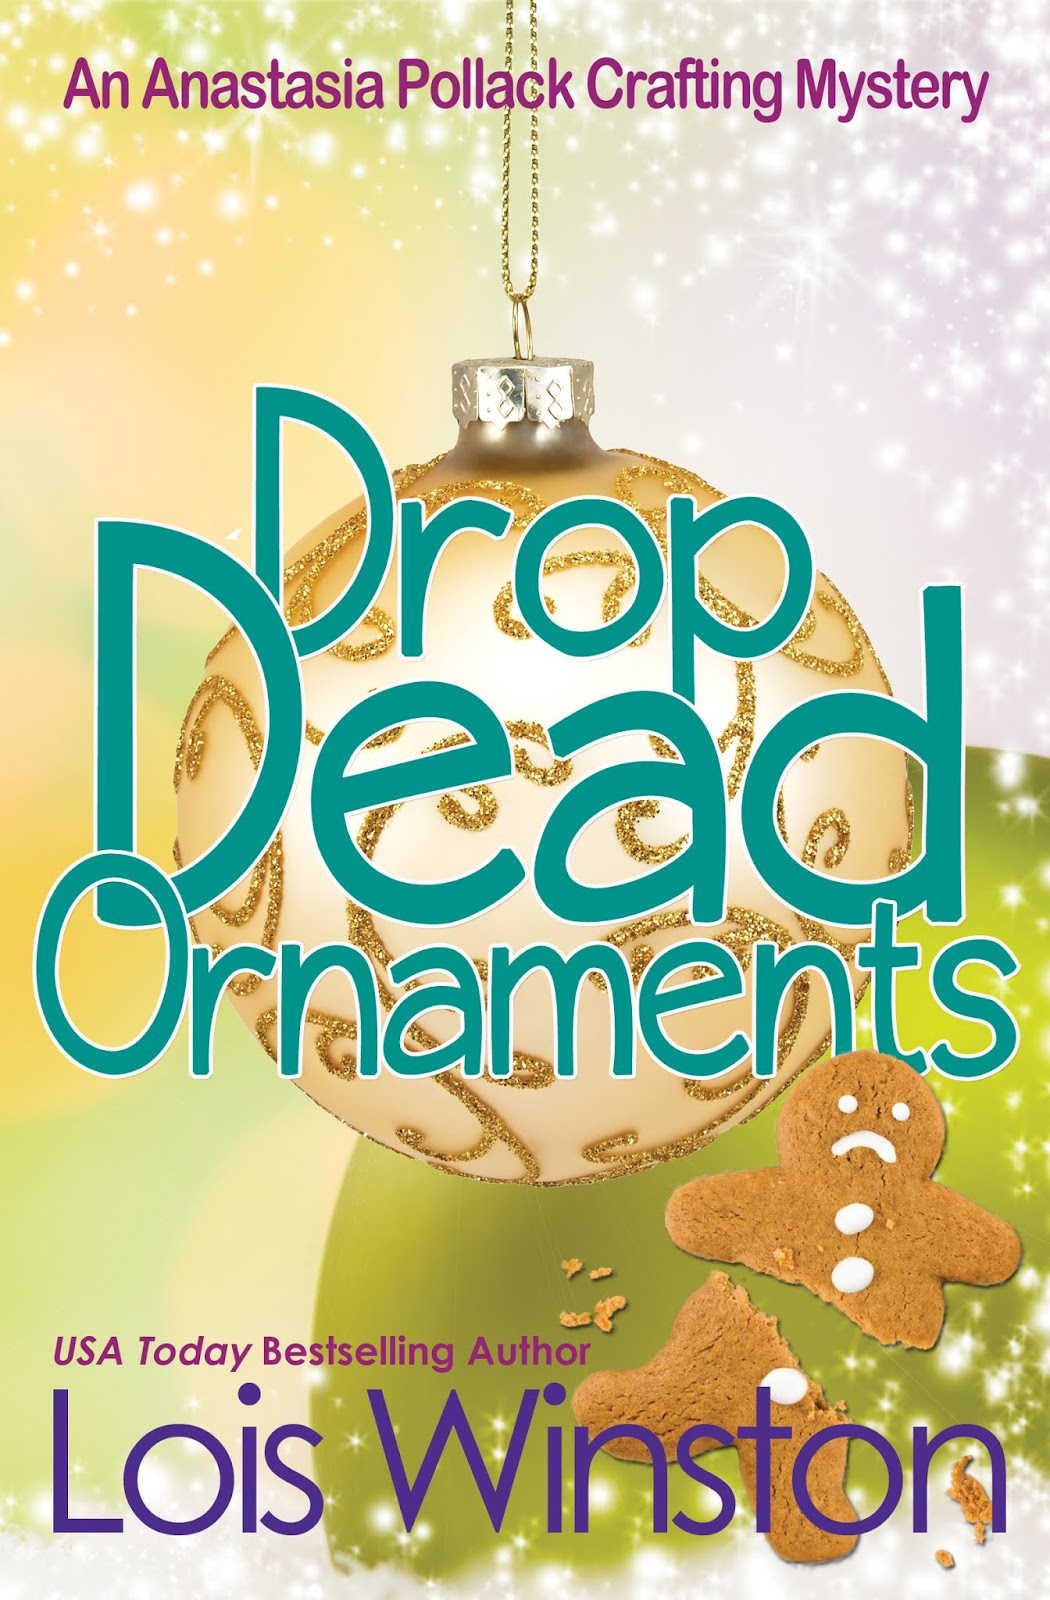 crafts with anastasia drop dead ornaments cover reveal